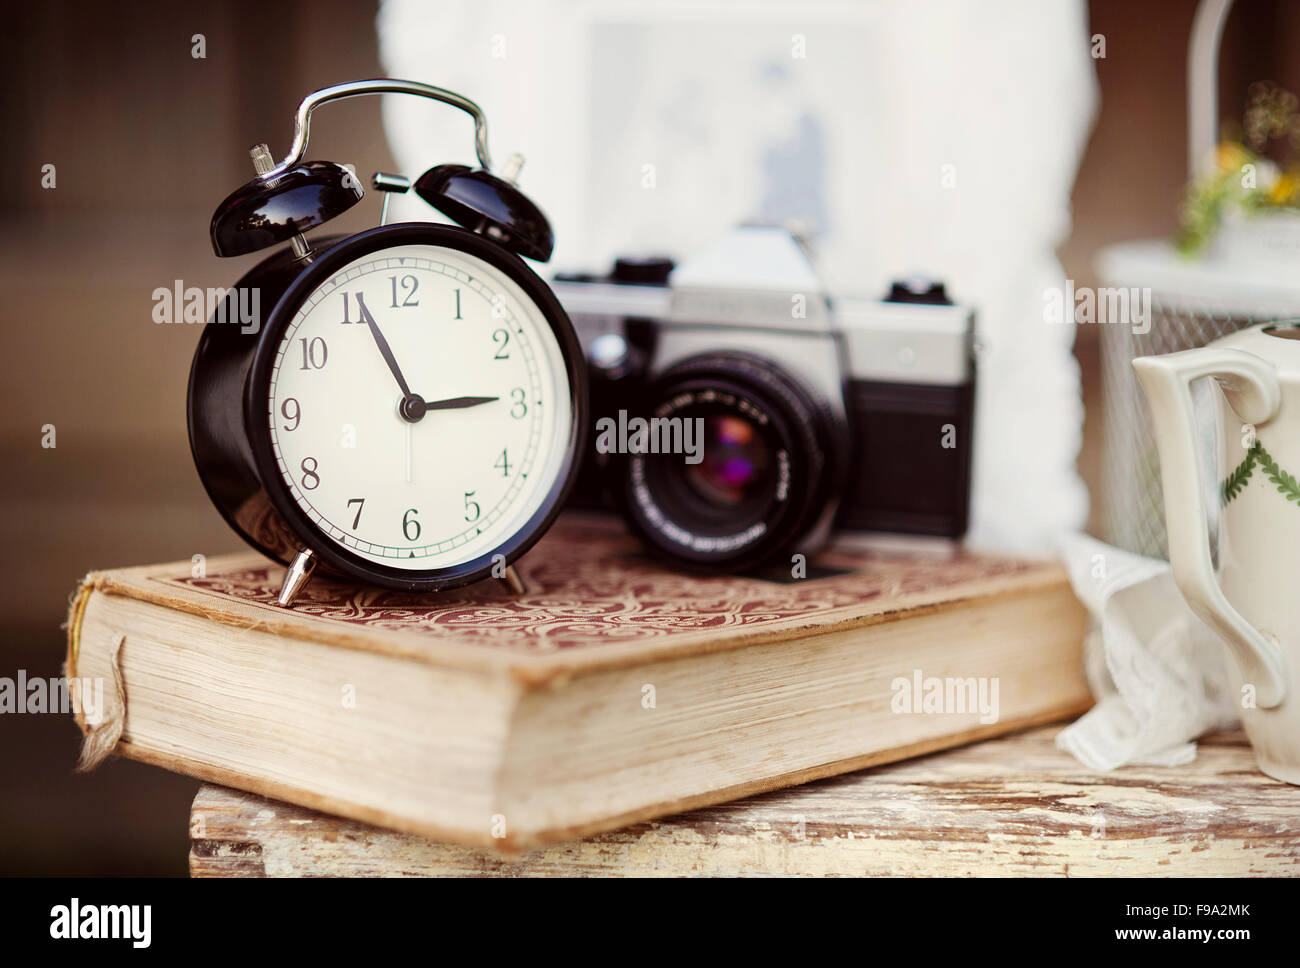 group of objects on vintage wooden table old alarm clock retro stock photo royalty free image. Black Bedroom Furniture Sets. Home Design Ideas